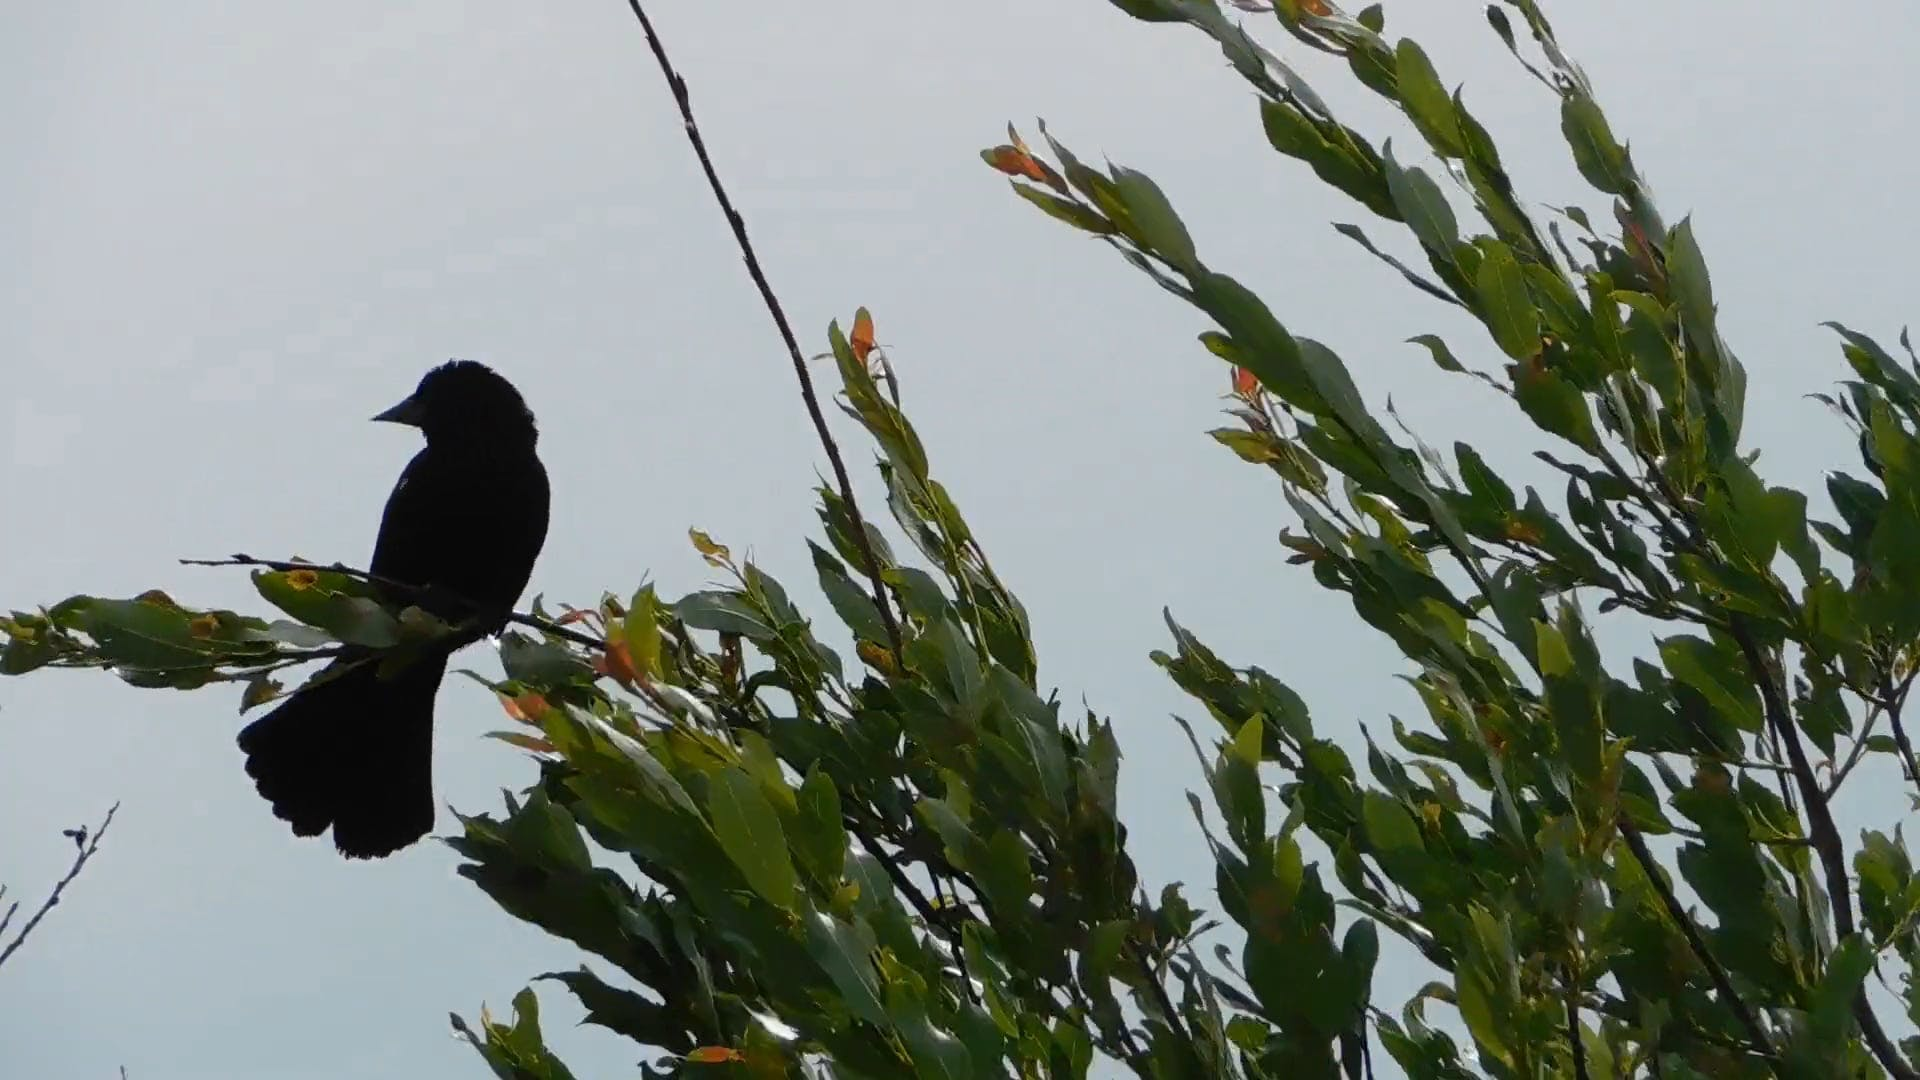 Video Of Bird Perched on A Tree